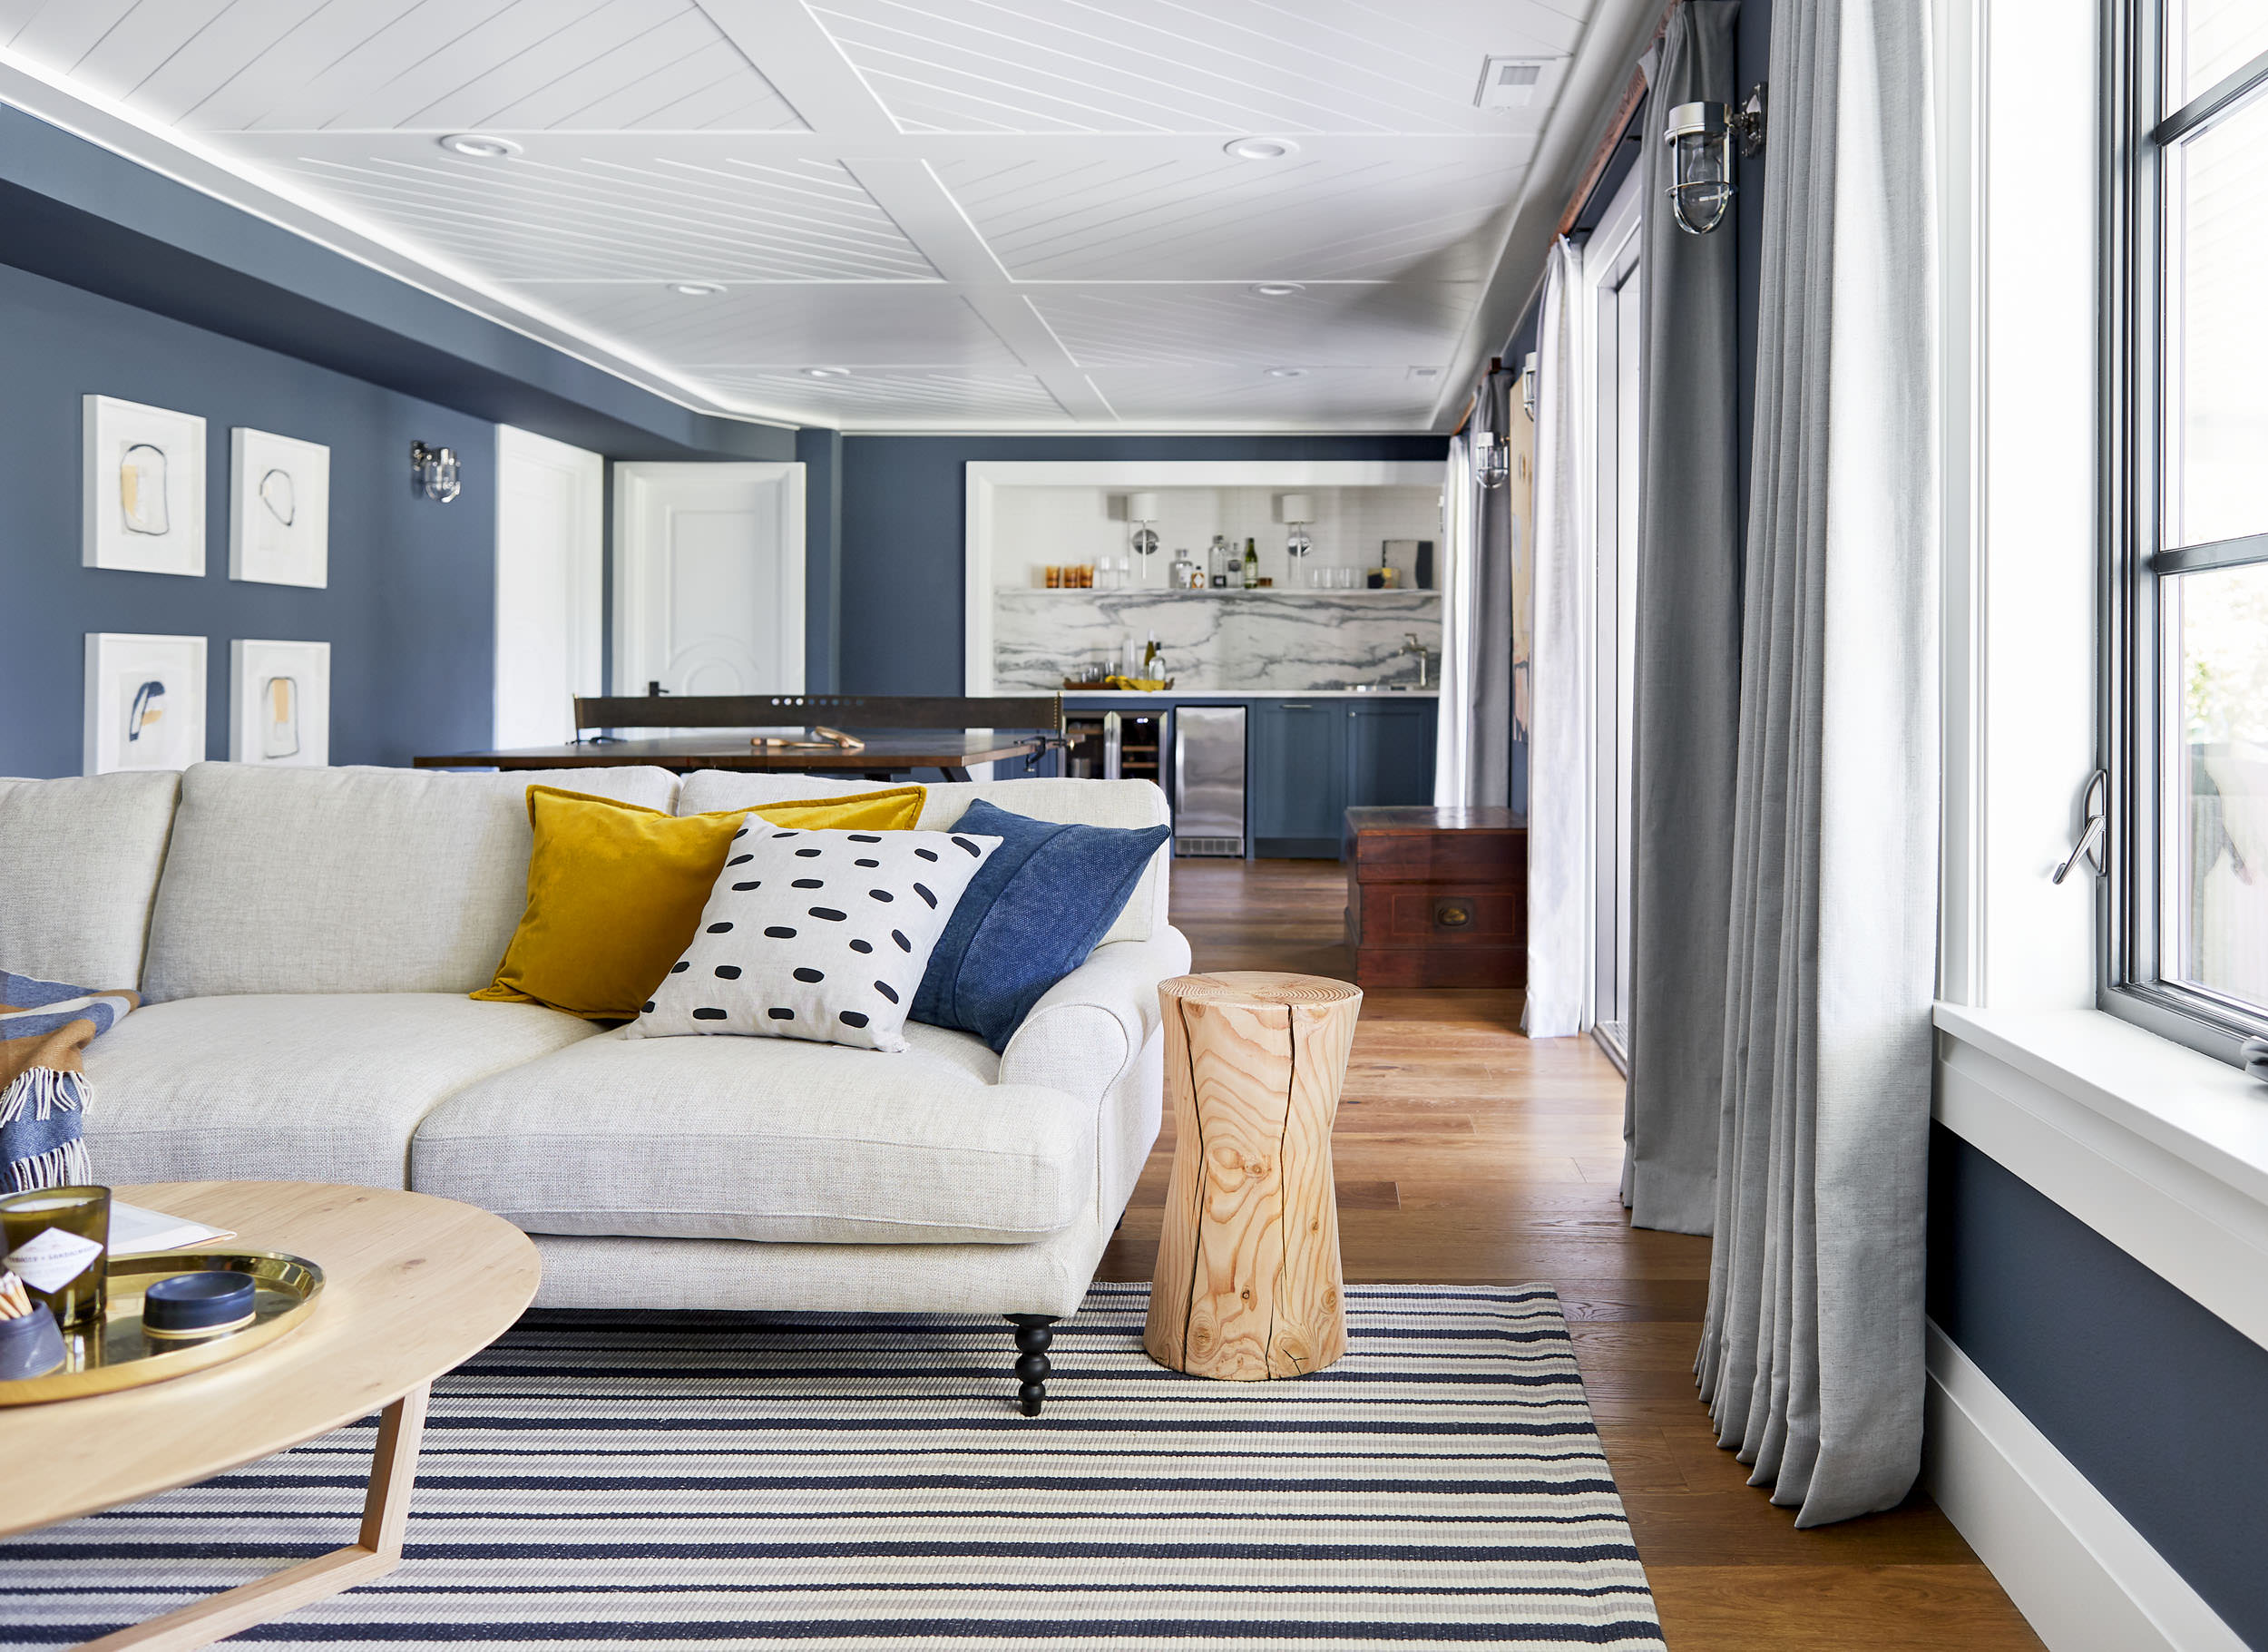 Interior Design Inspiration from Emily Henderson - Traditional Modern Home in Portland